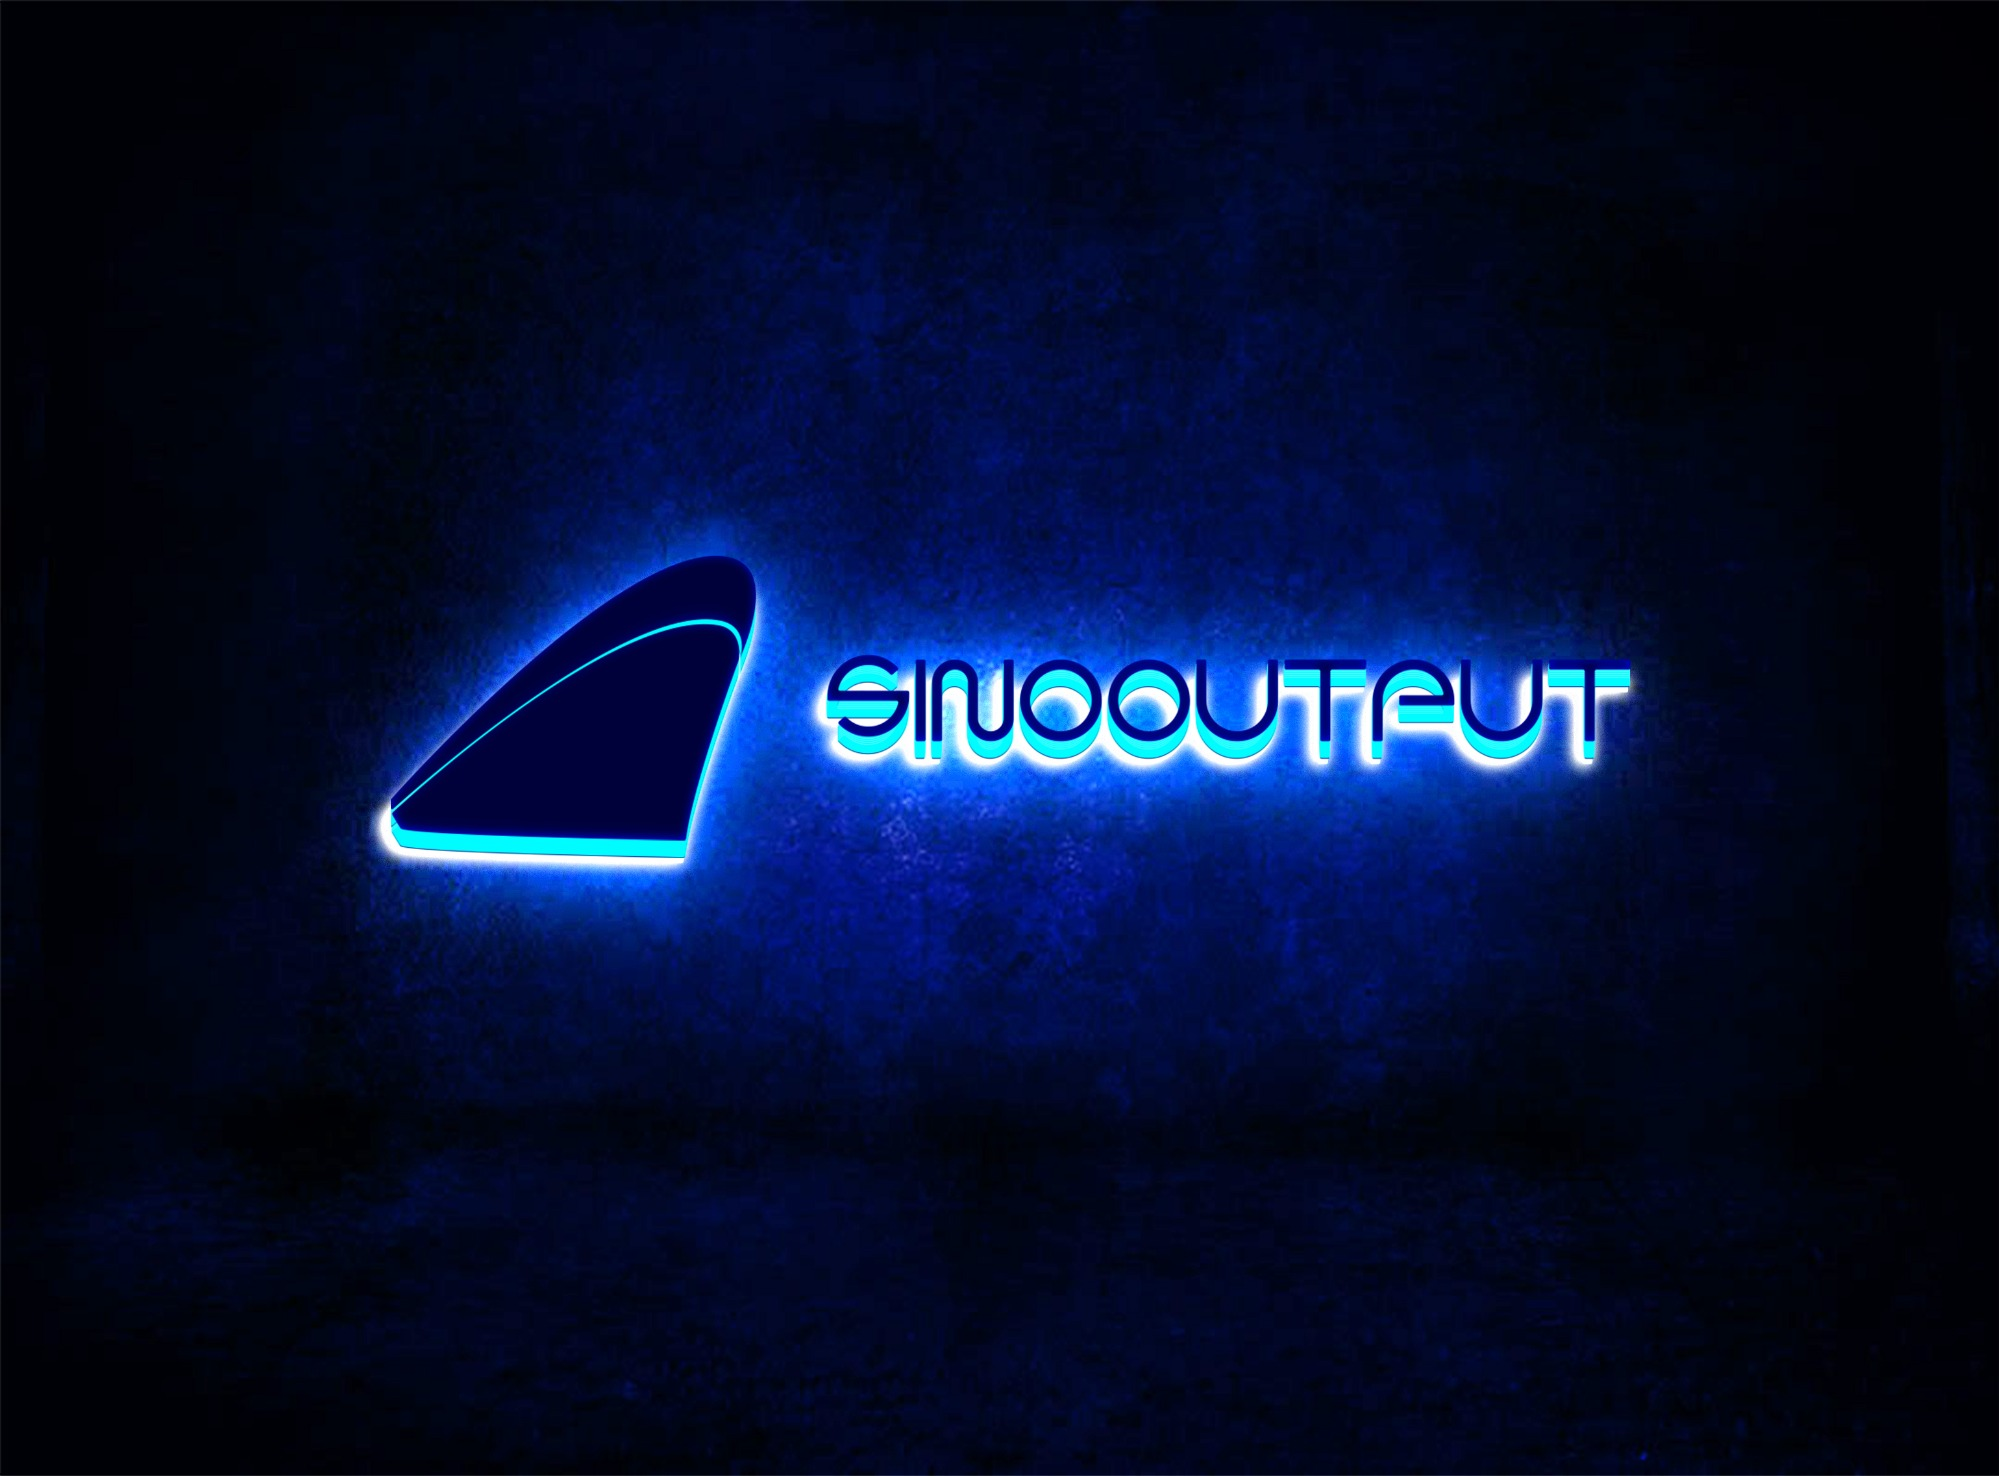 Sinooutput Group LTD.